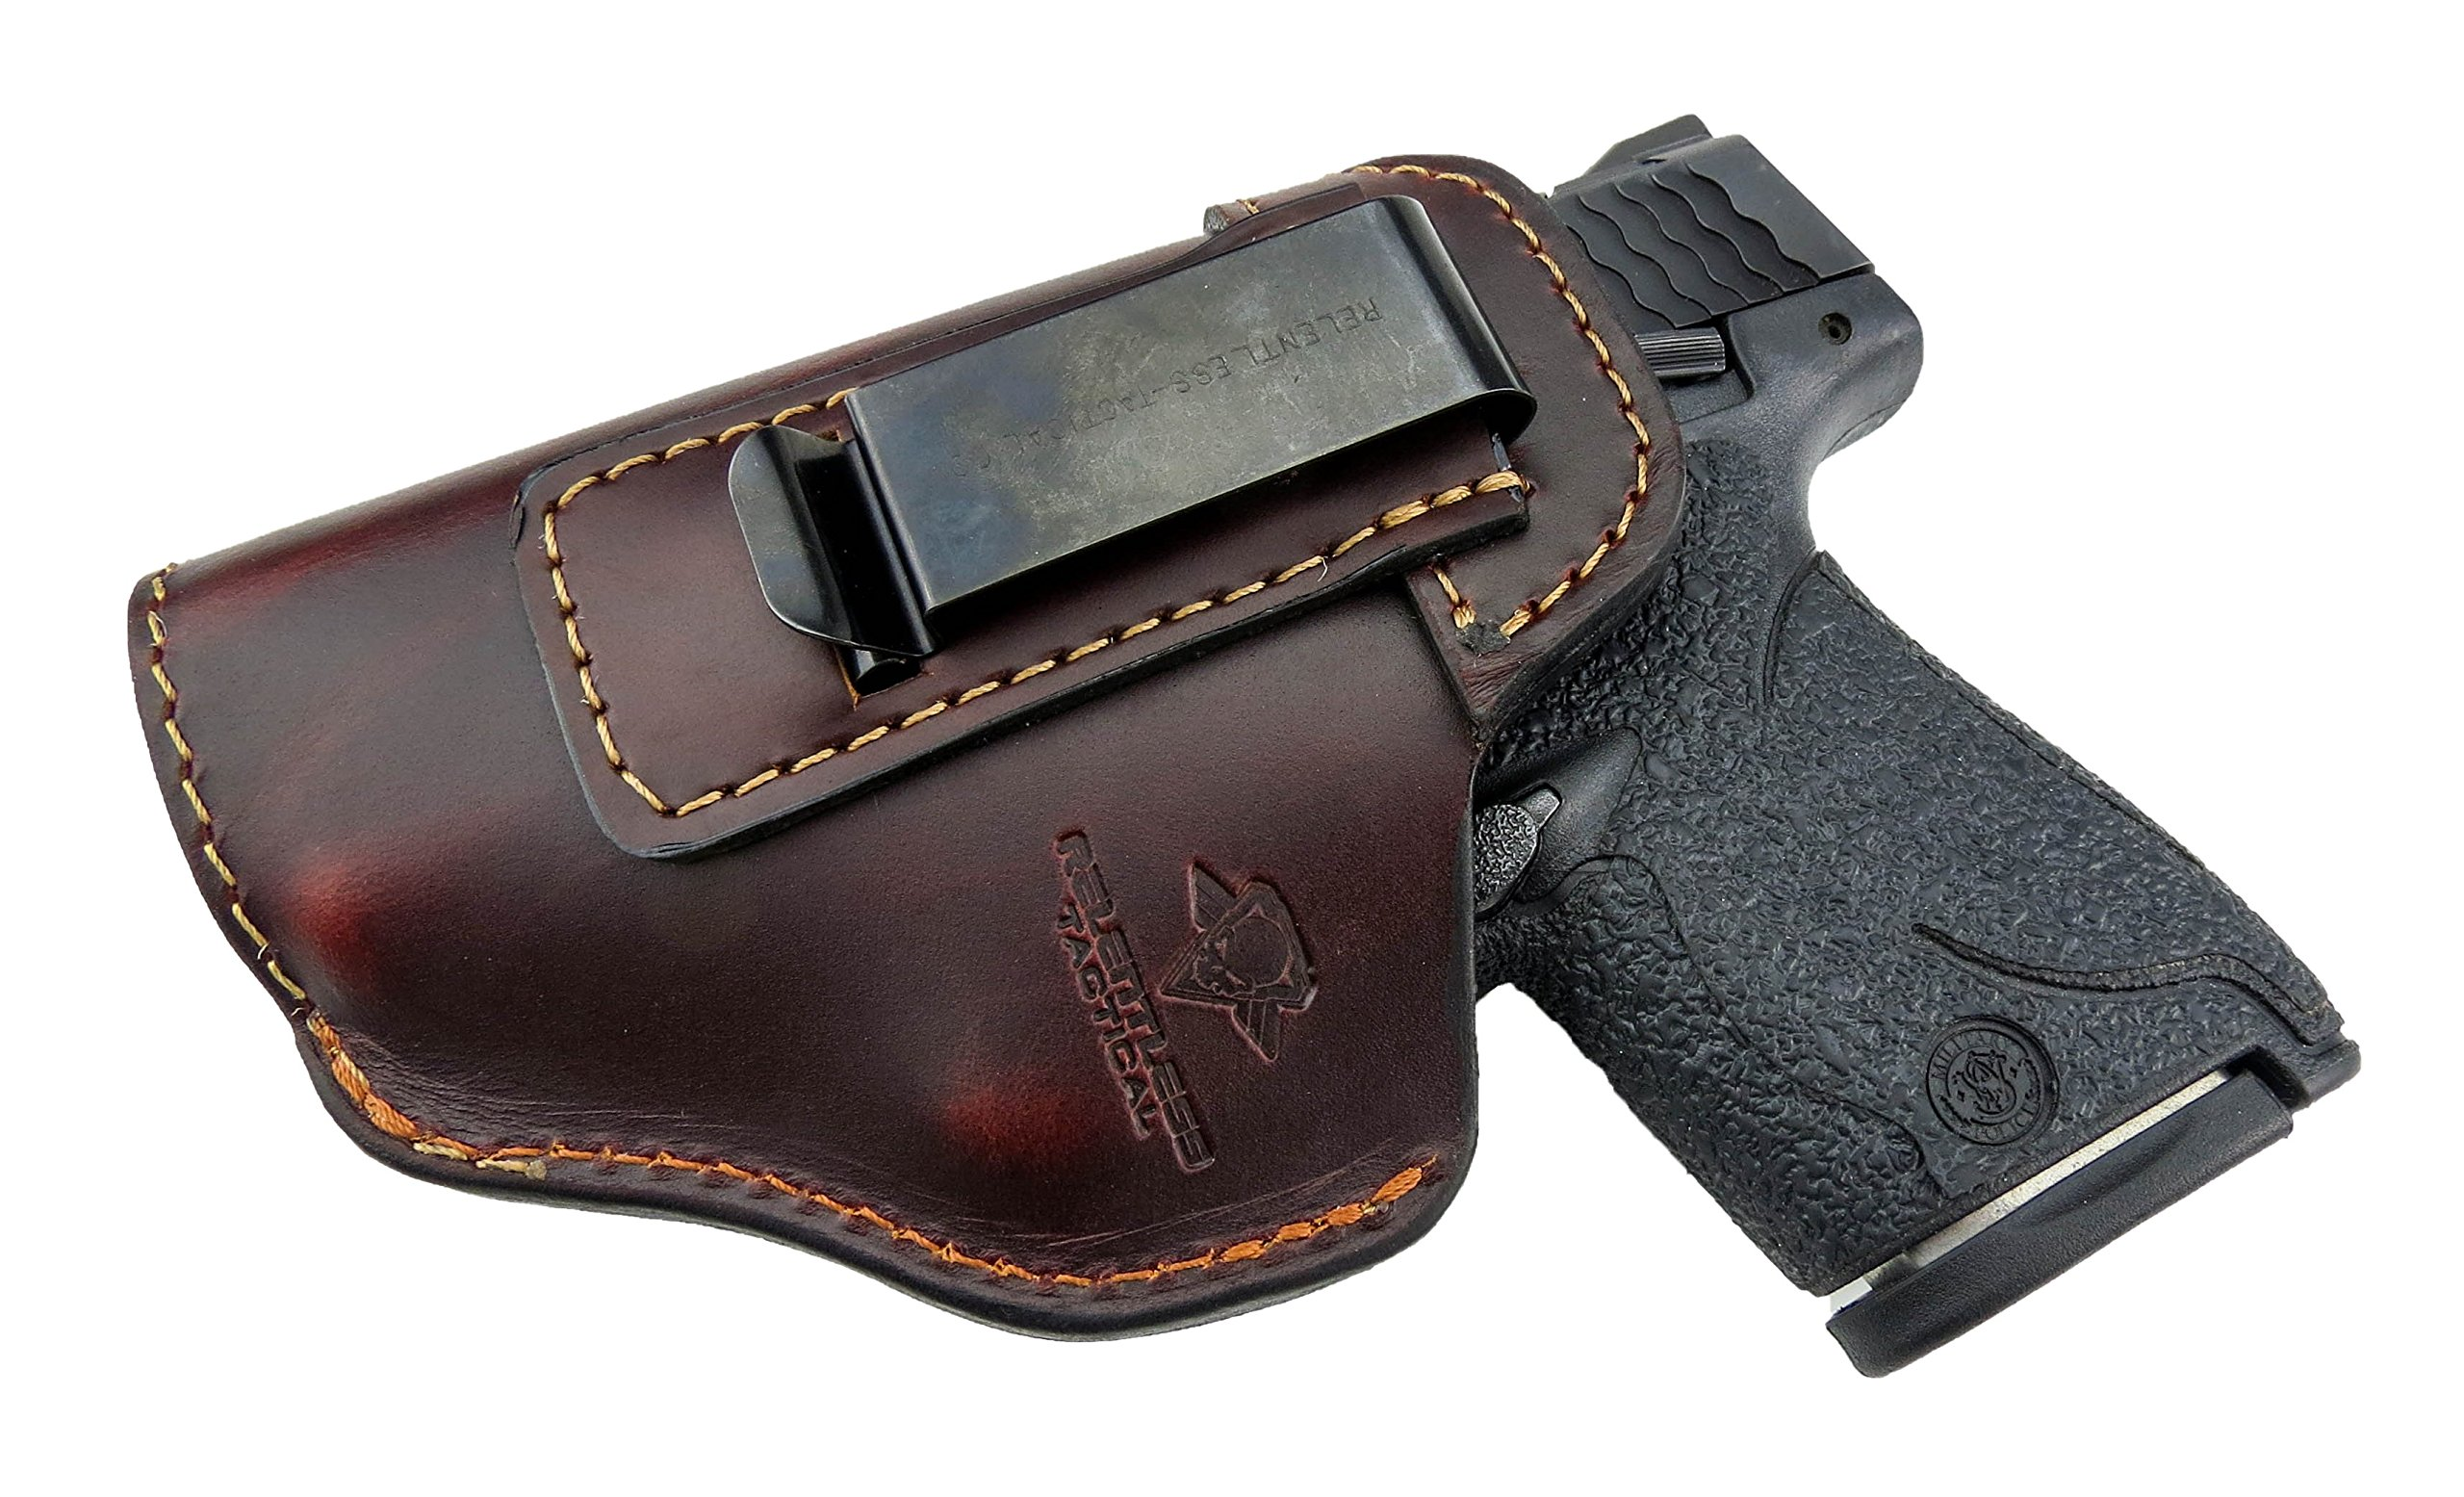 Relentless Tactical The Defender Leather IWB Holster - Made in USA - for S&W M&P Shield - Glock 17 19 22 23 32 33 / Springfield XD & XDS/Plus All Similar Sized Handguns – Brown – Left Handed by Relentless Tactical (Image #1)